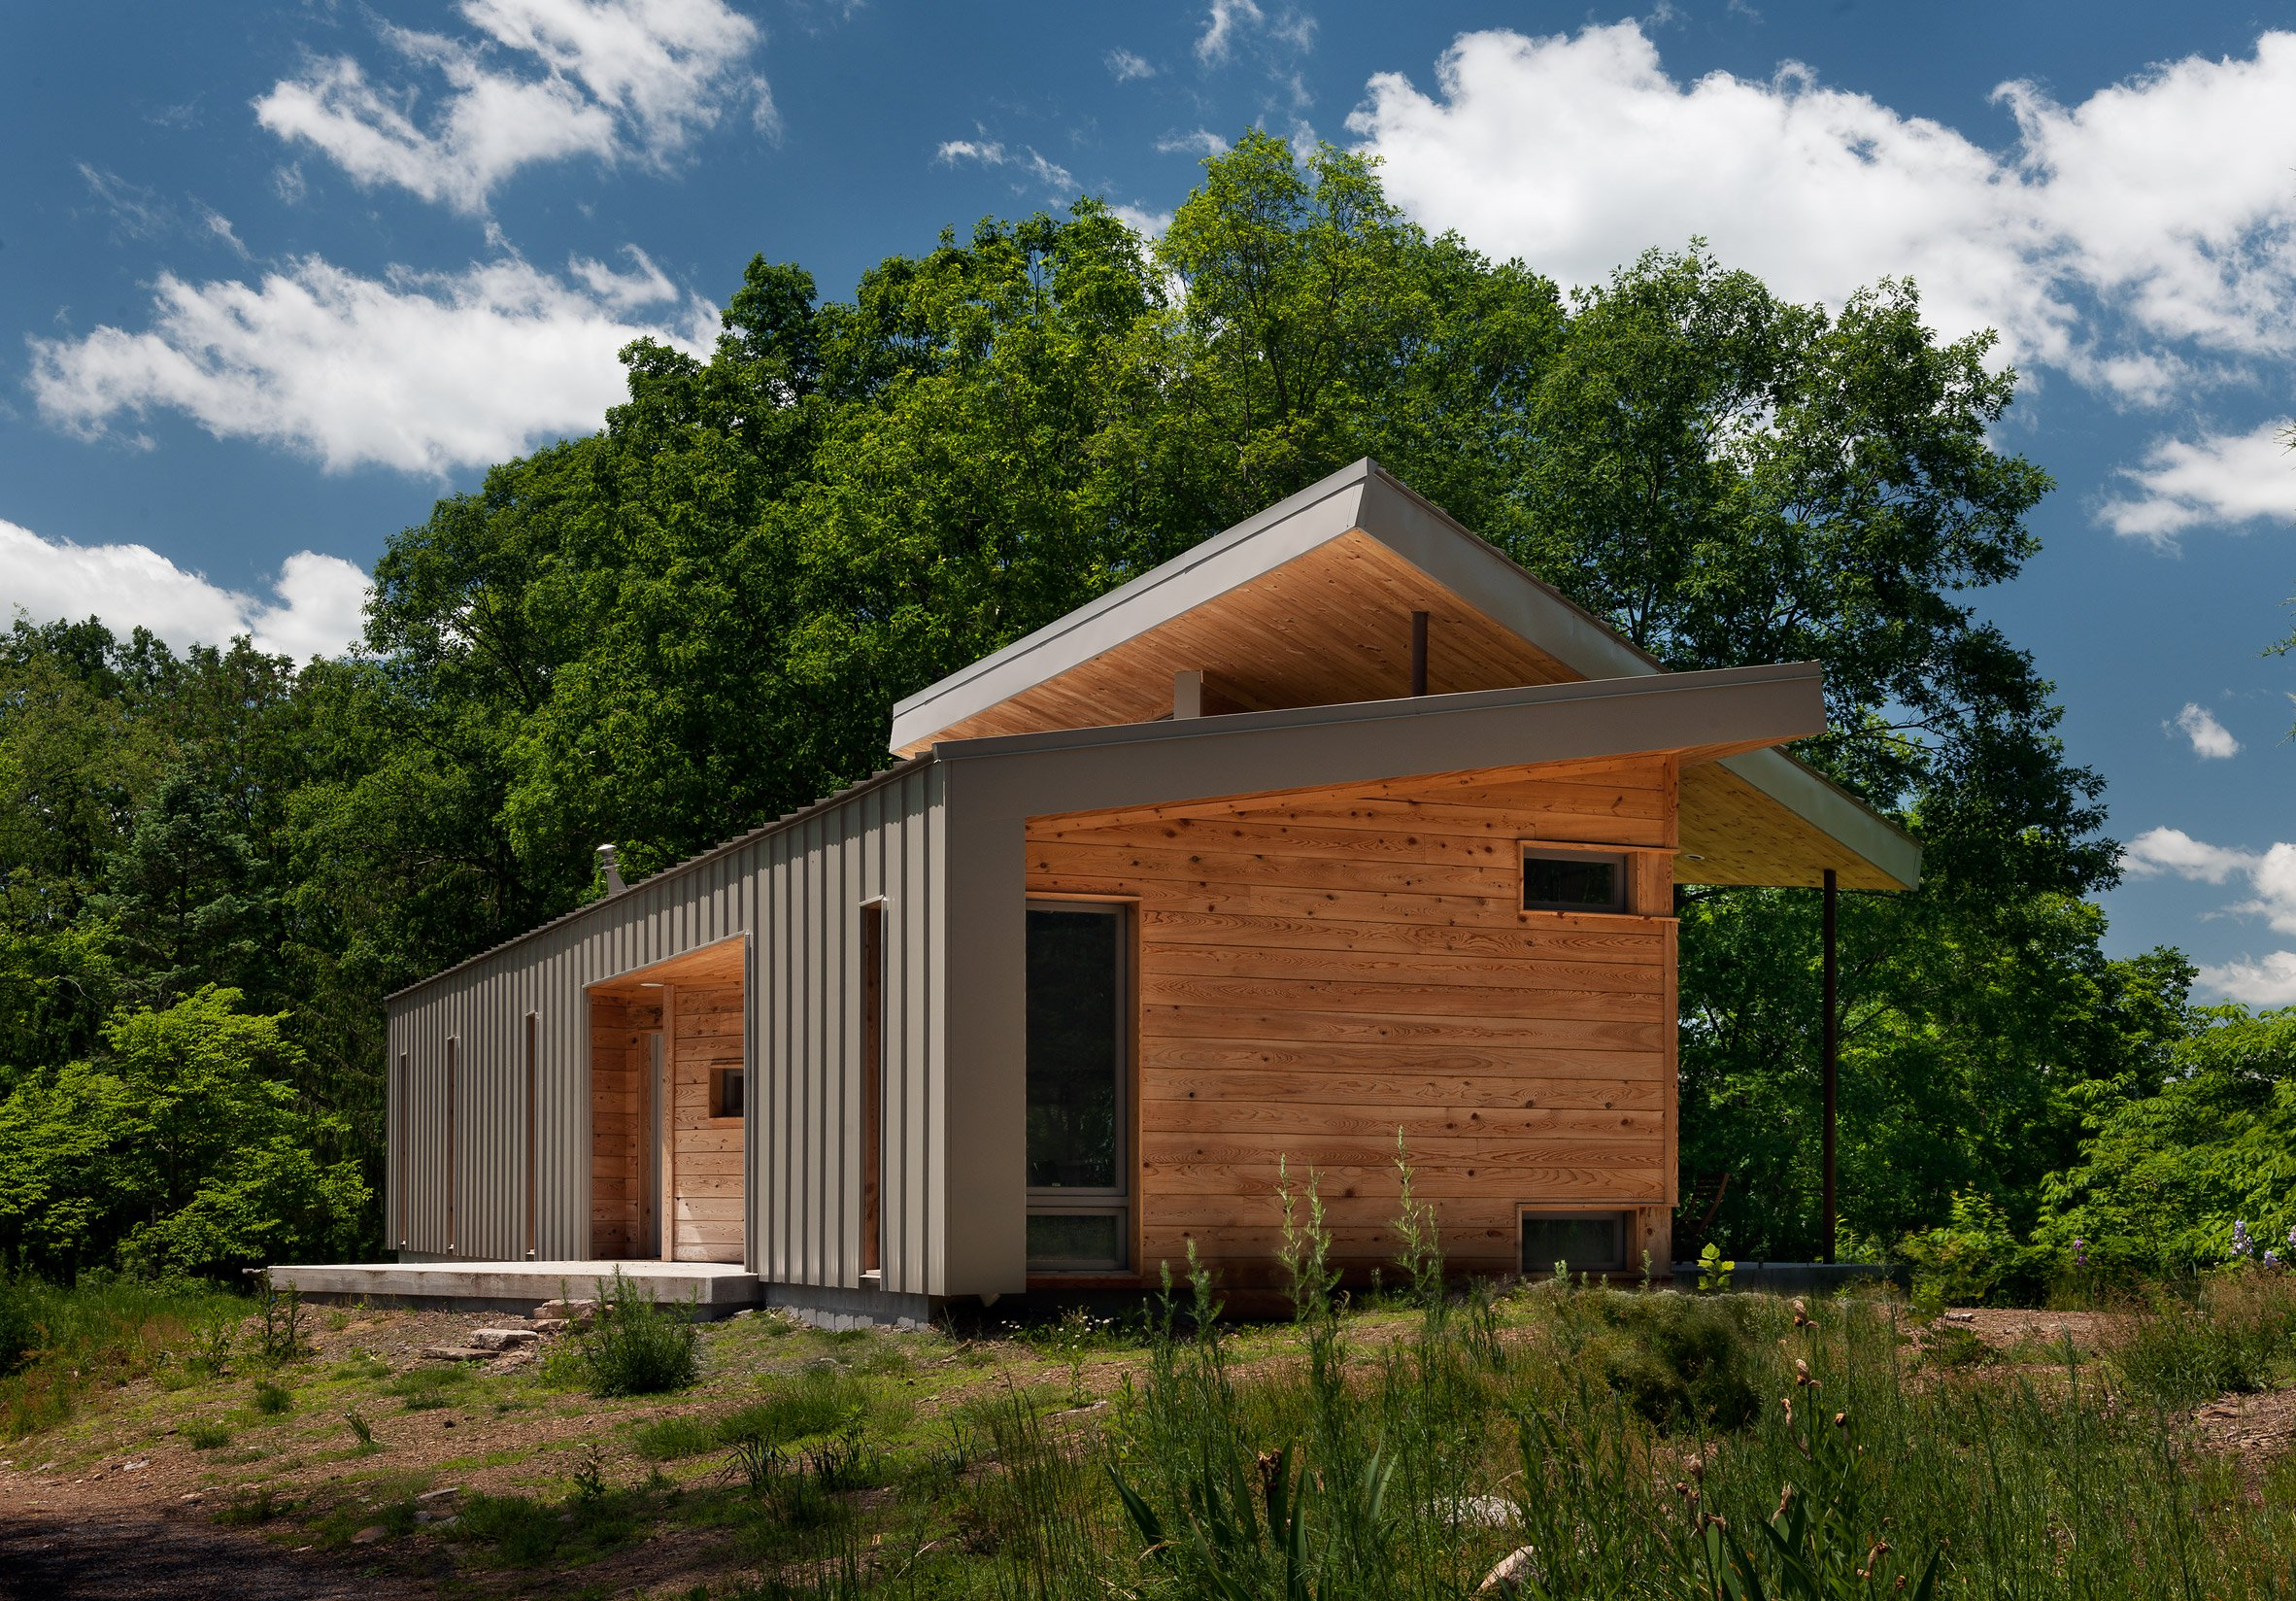 West Virginia home by GriD Architects perches above Potomac River